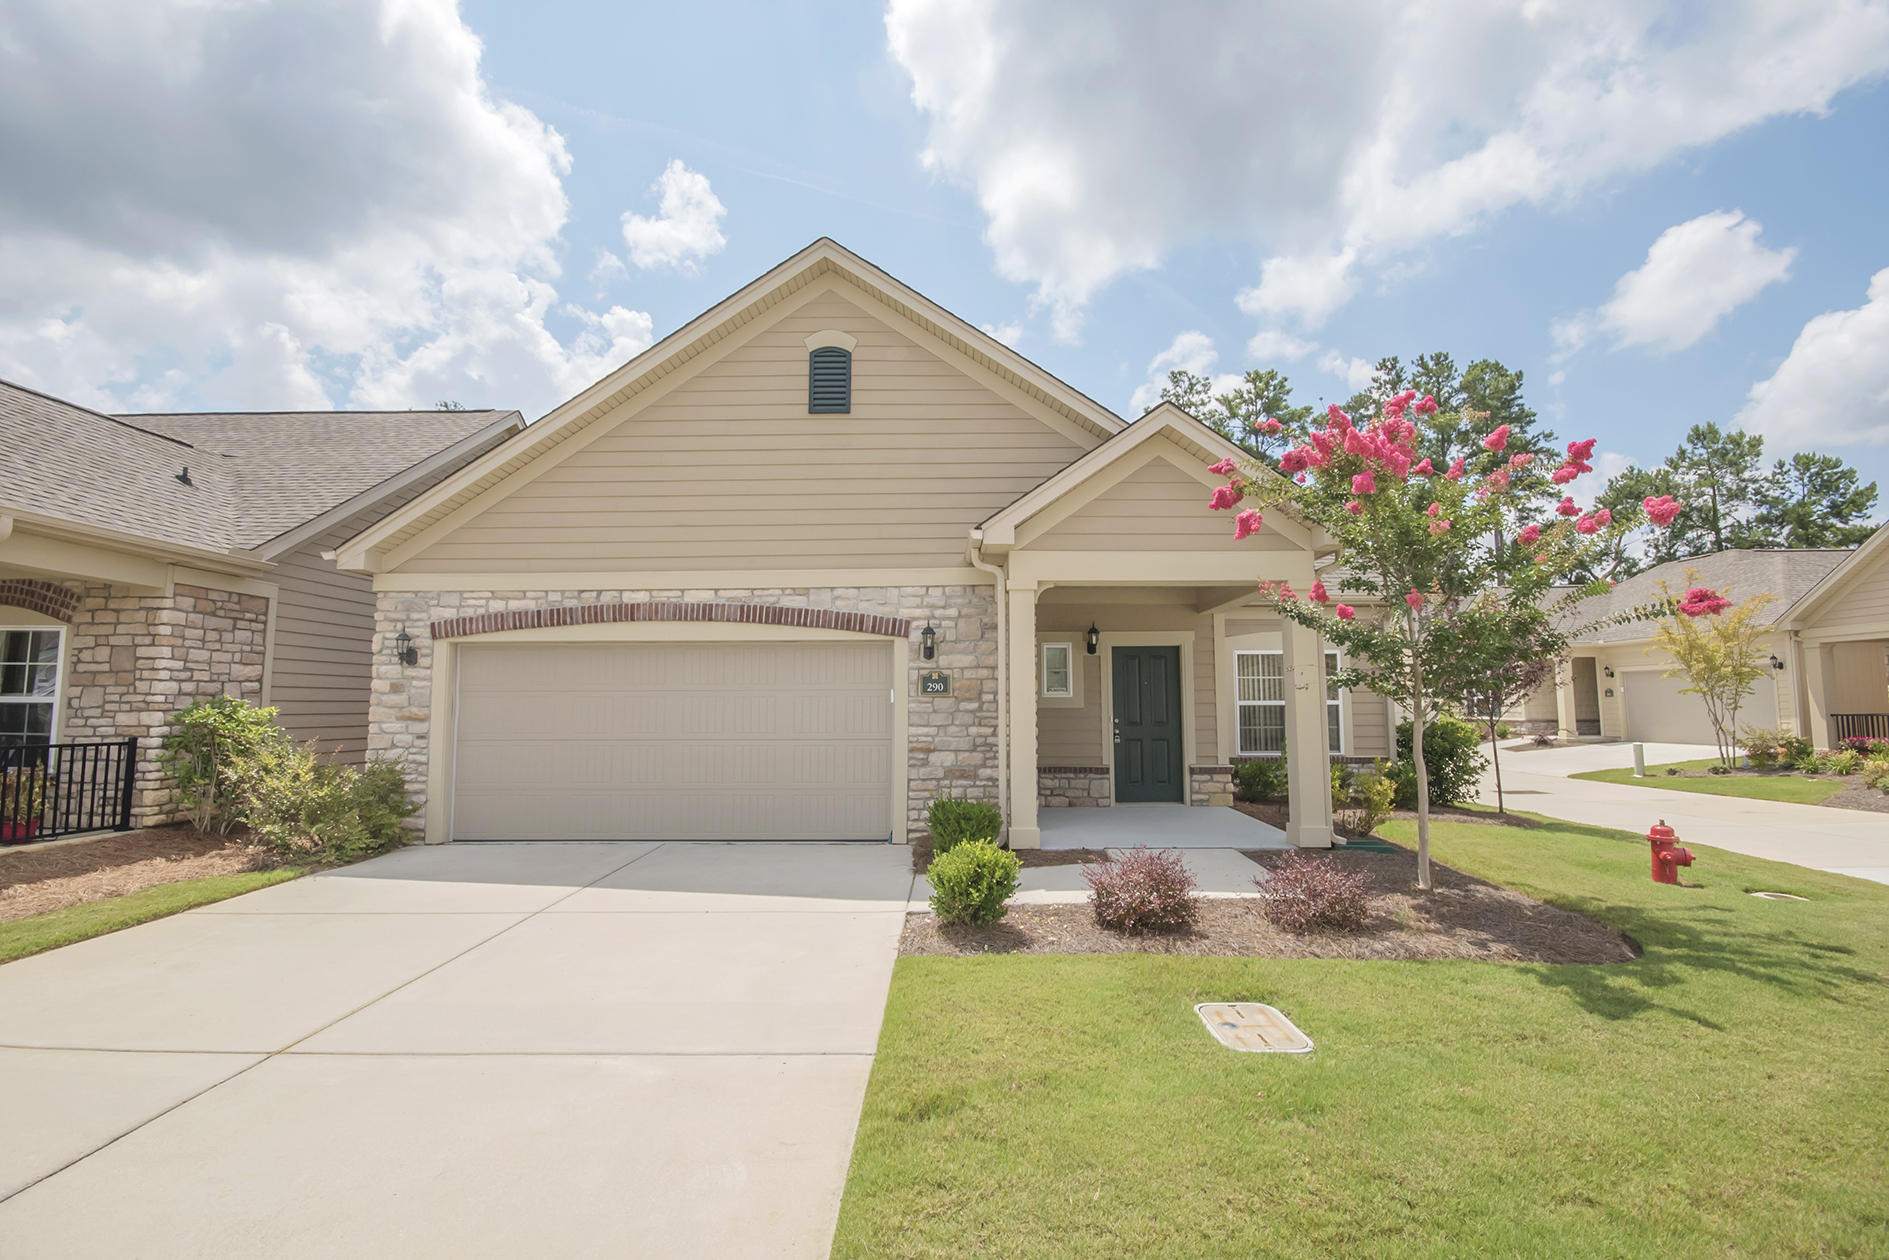 290 Village Stone Circle Summerville, Sc 29483